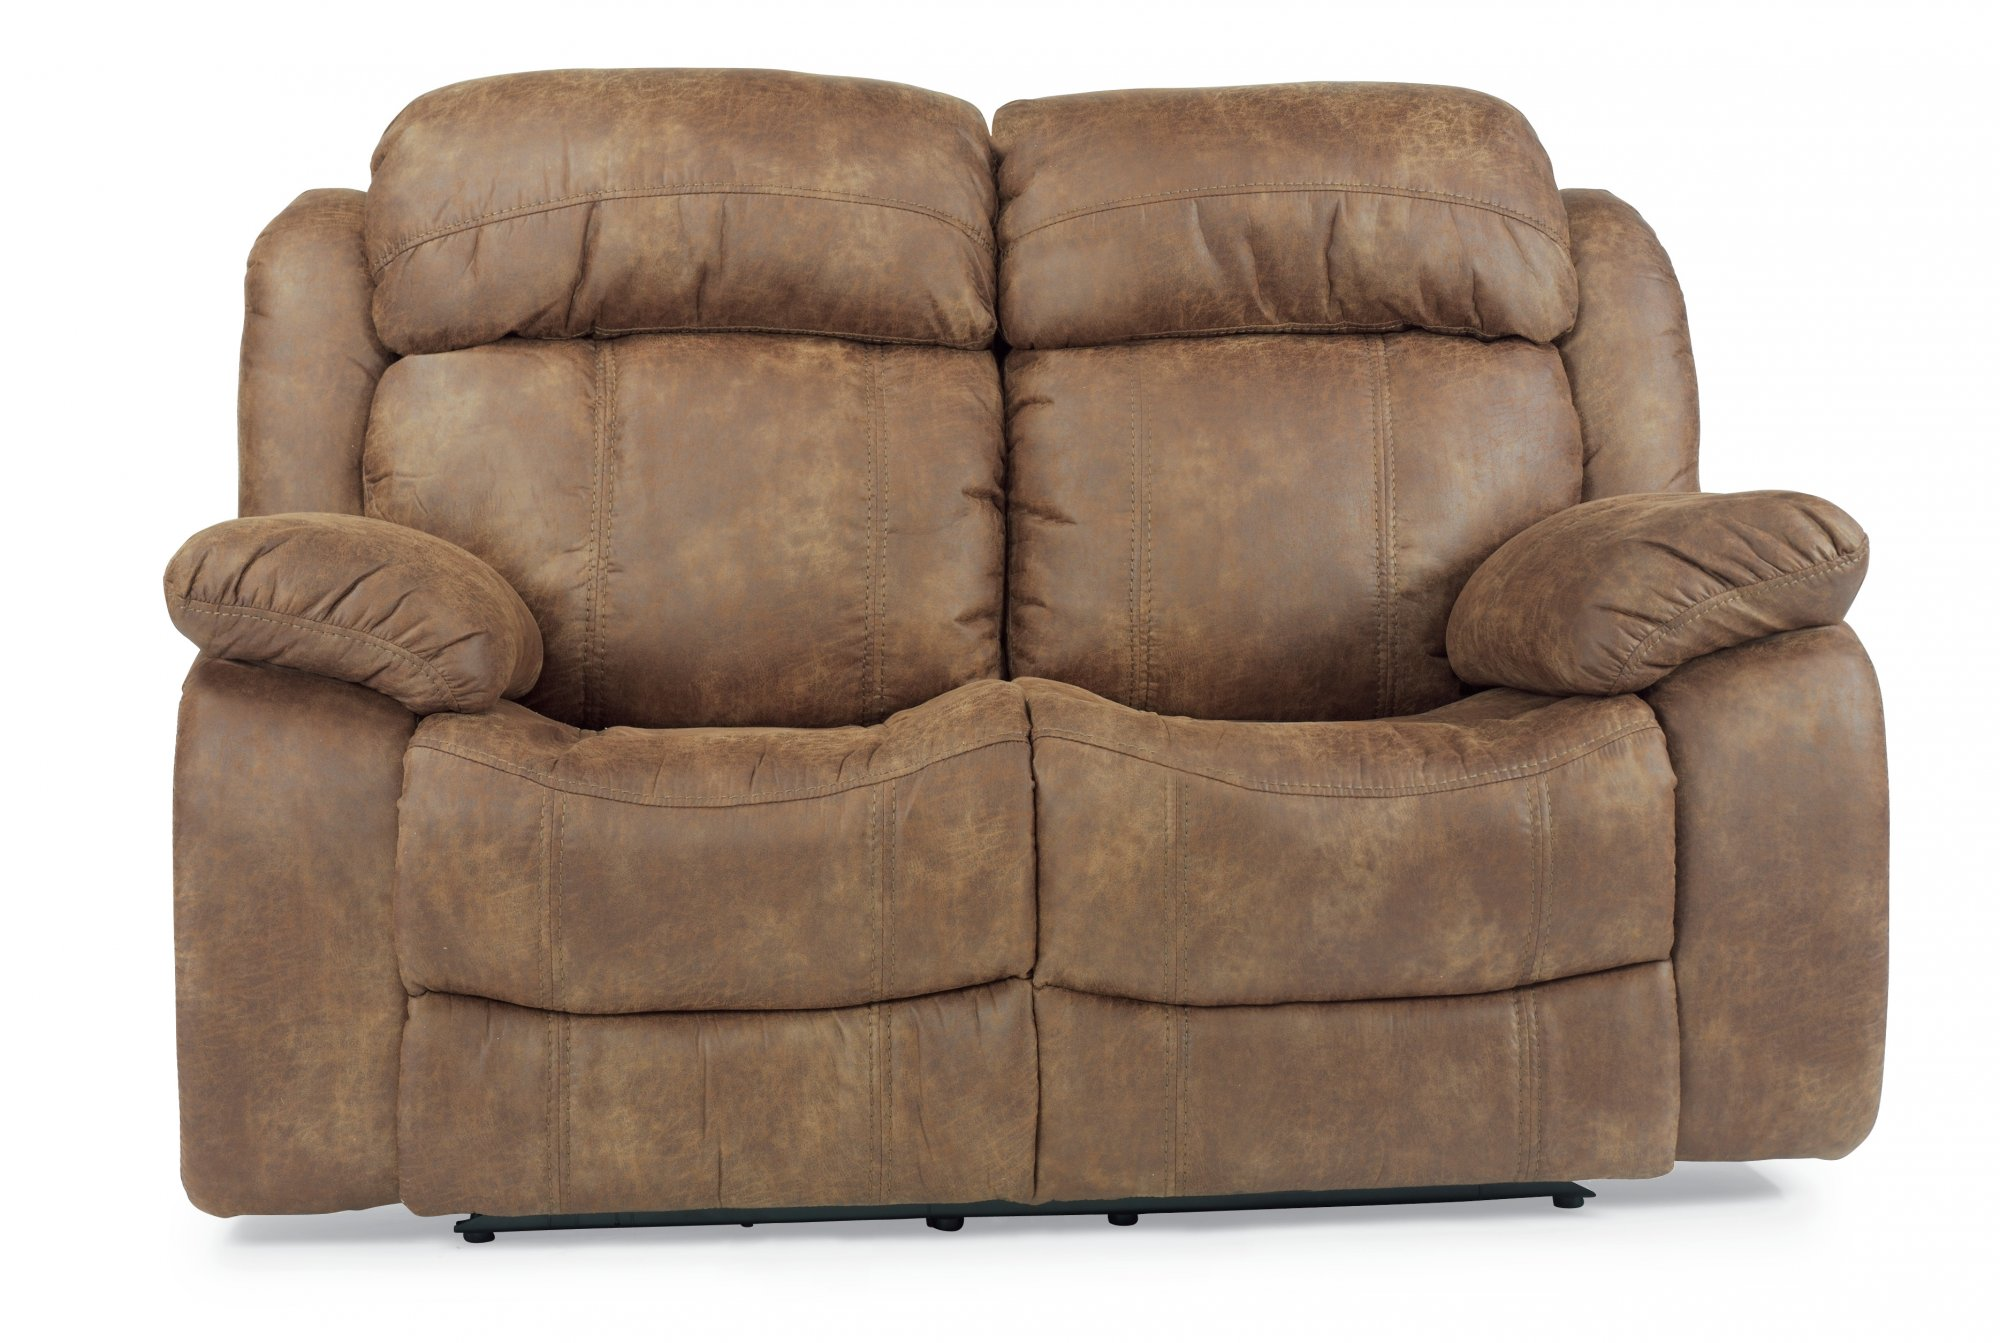 Pleasant Flexsteel 1408 60 Como Fabric Reclining Loveseat Machost Co Dining Chair Design Ideas Machostcouk